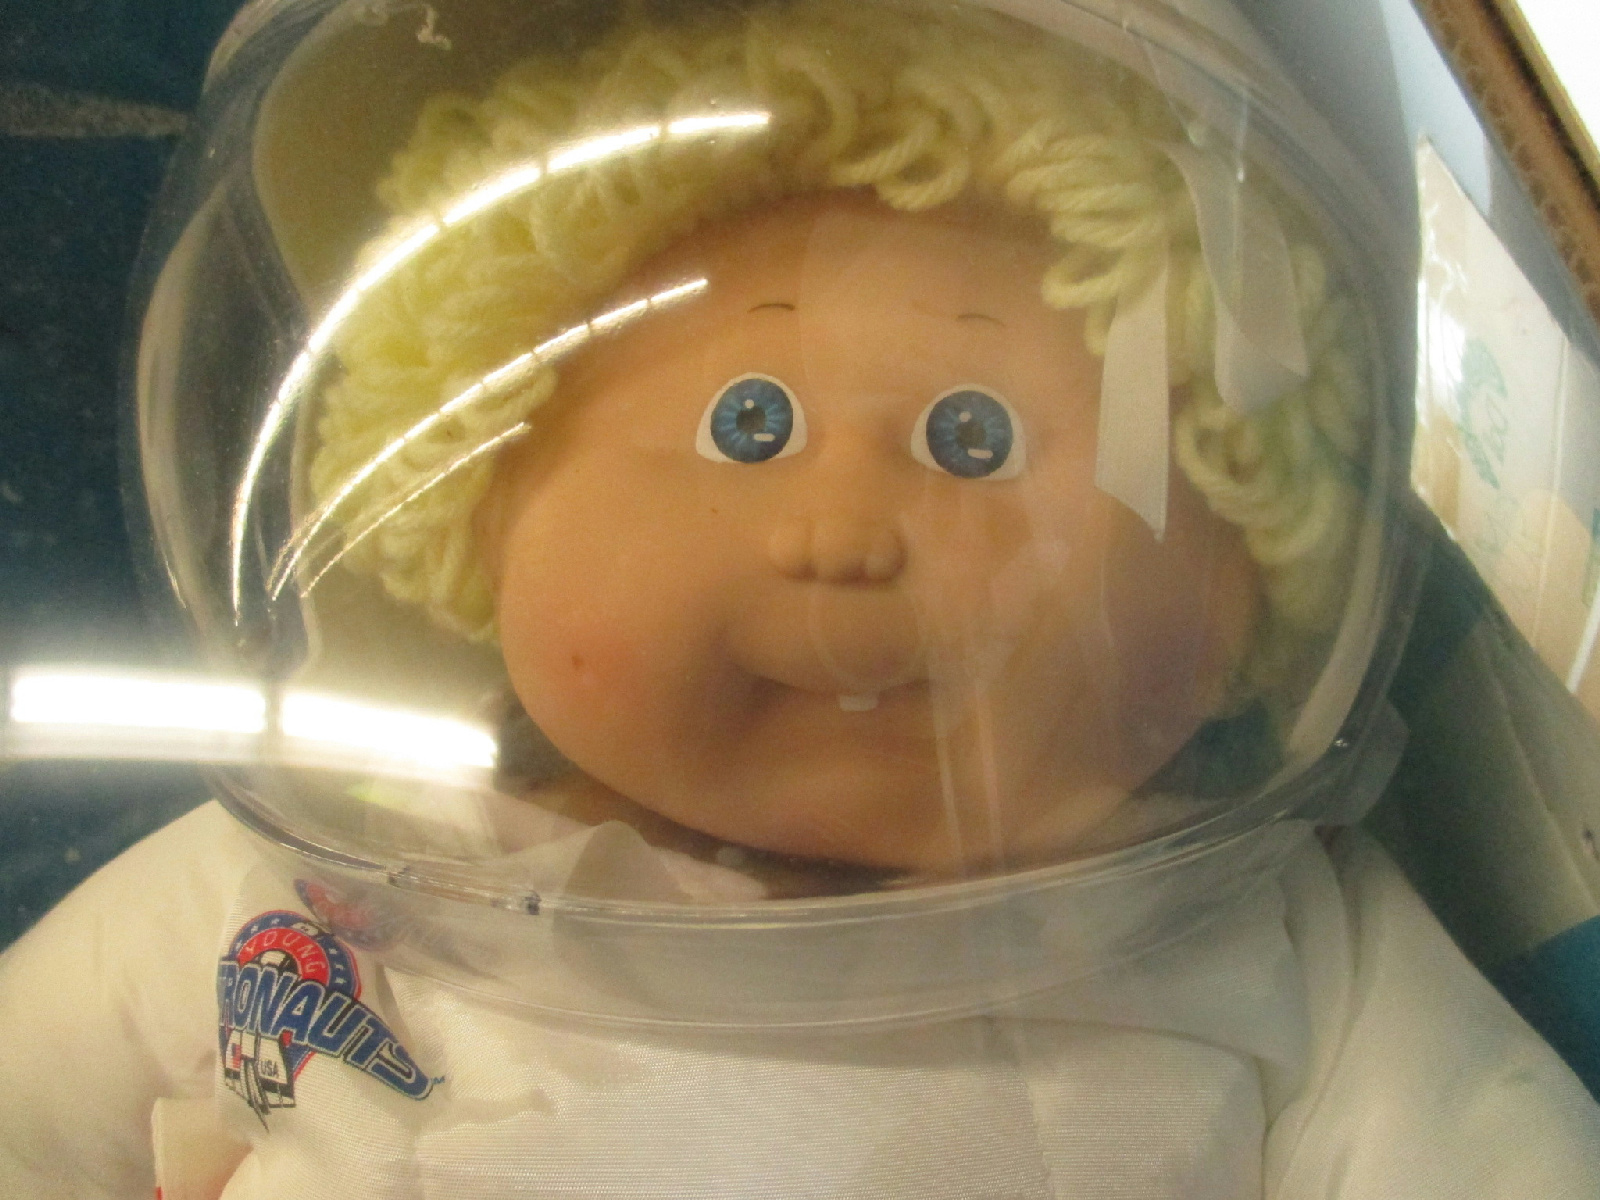 young astronauts cabbage patch doll - photo #19